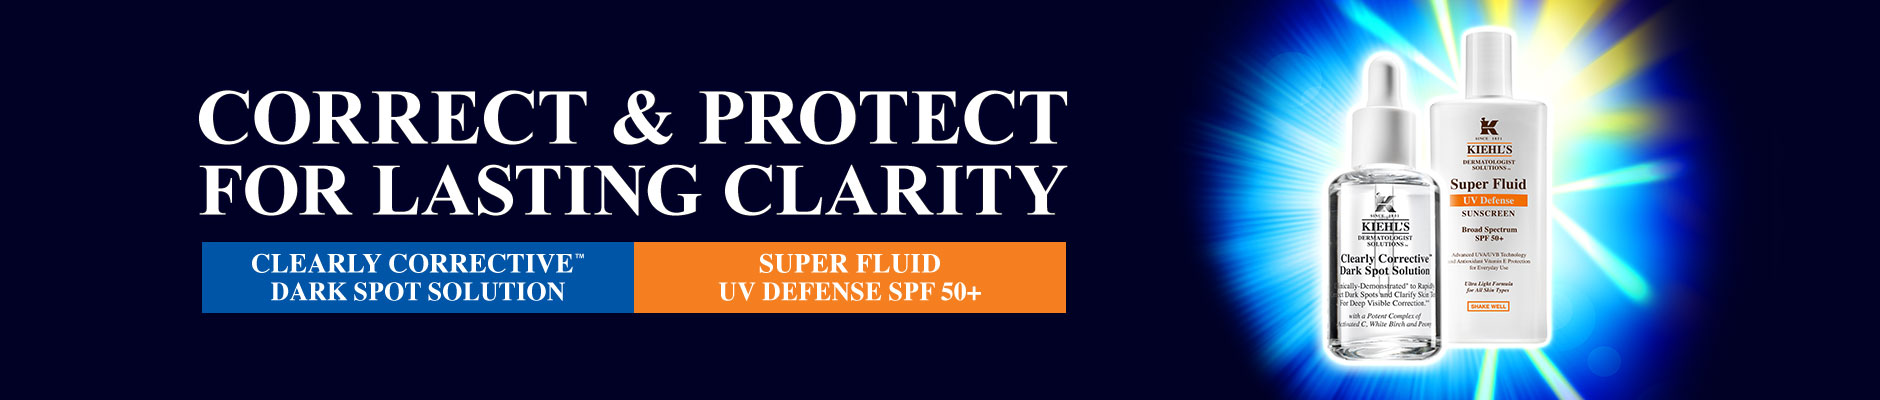 Correct & Protect For Lasting Clarity